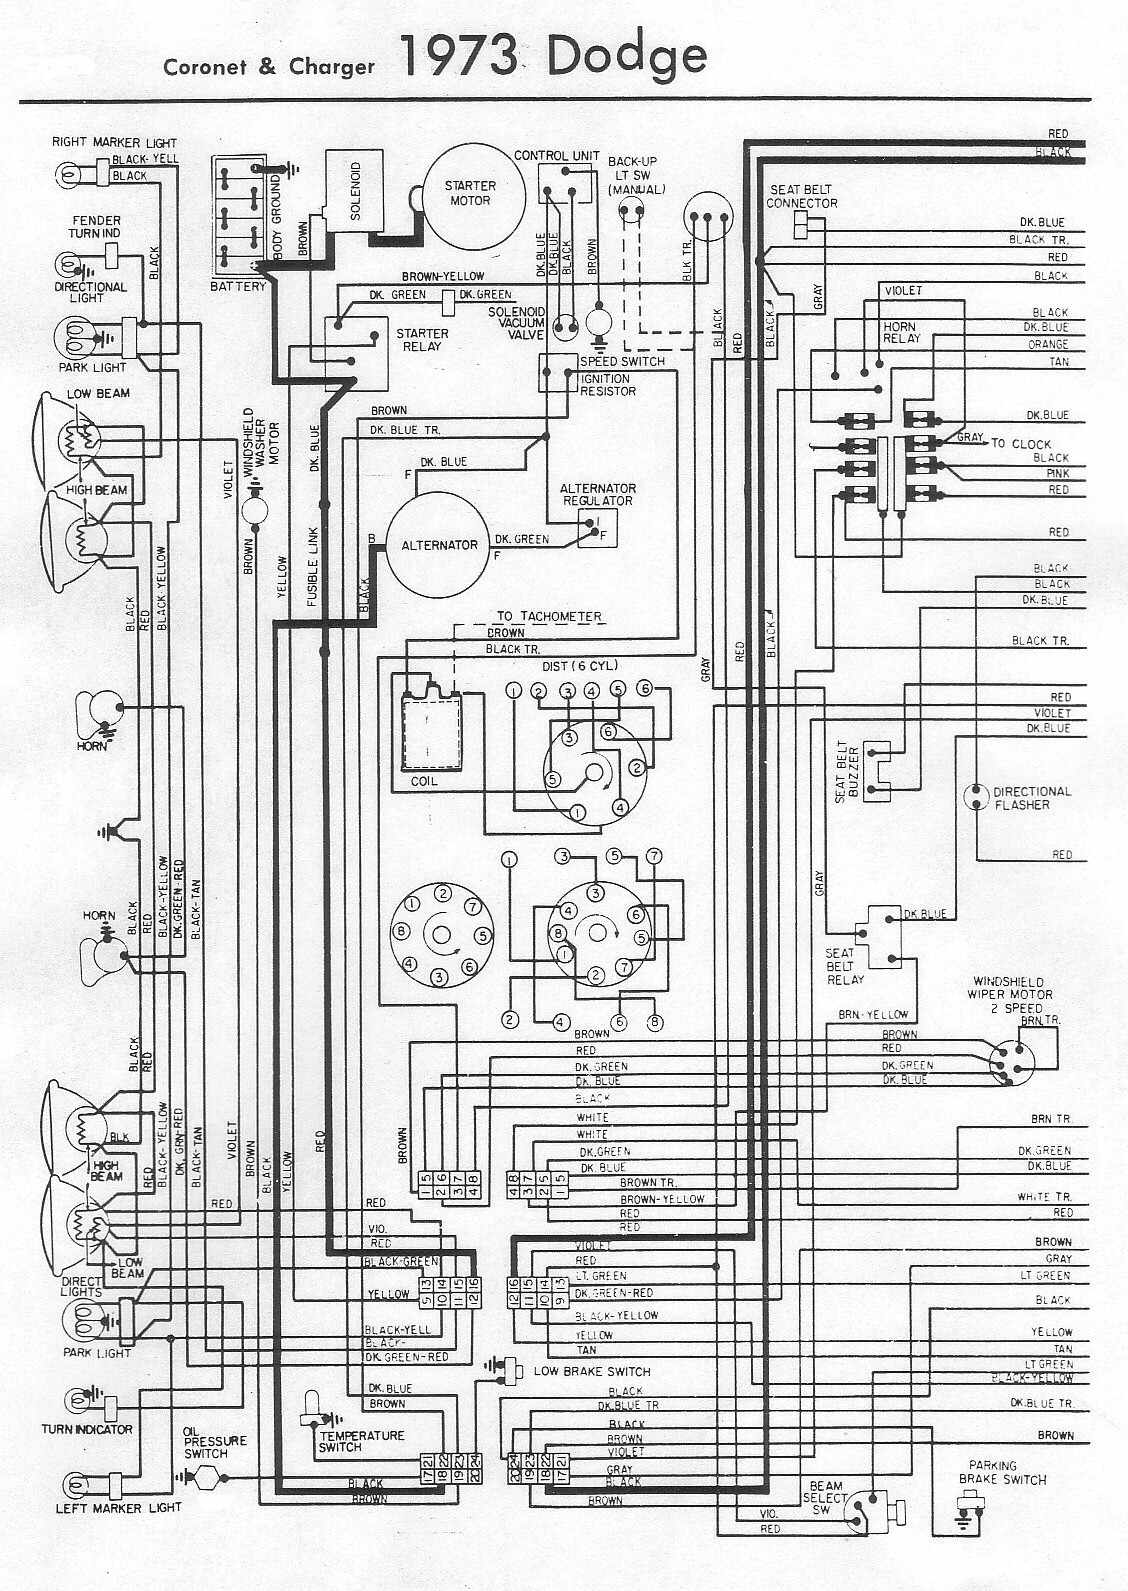 1970 Charger Wiring Diagram - Wiring Diagram Article on